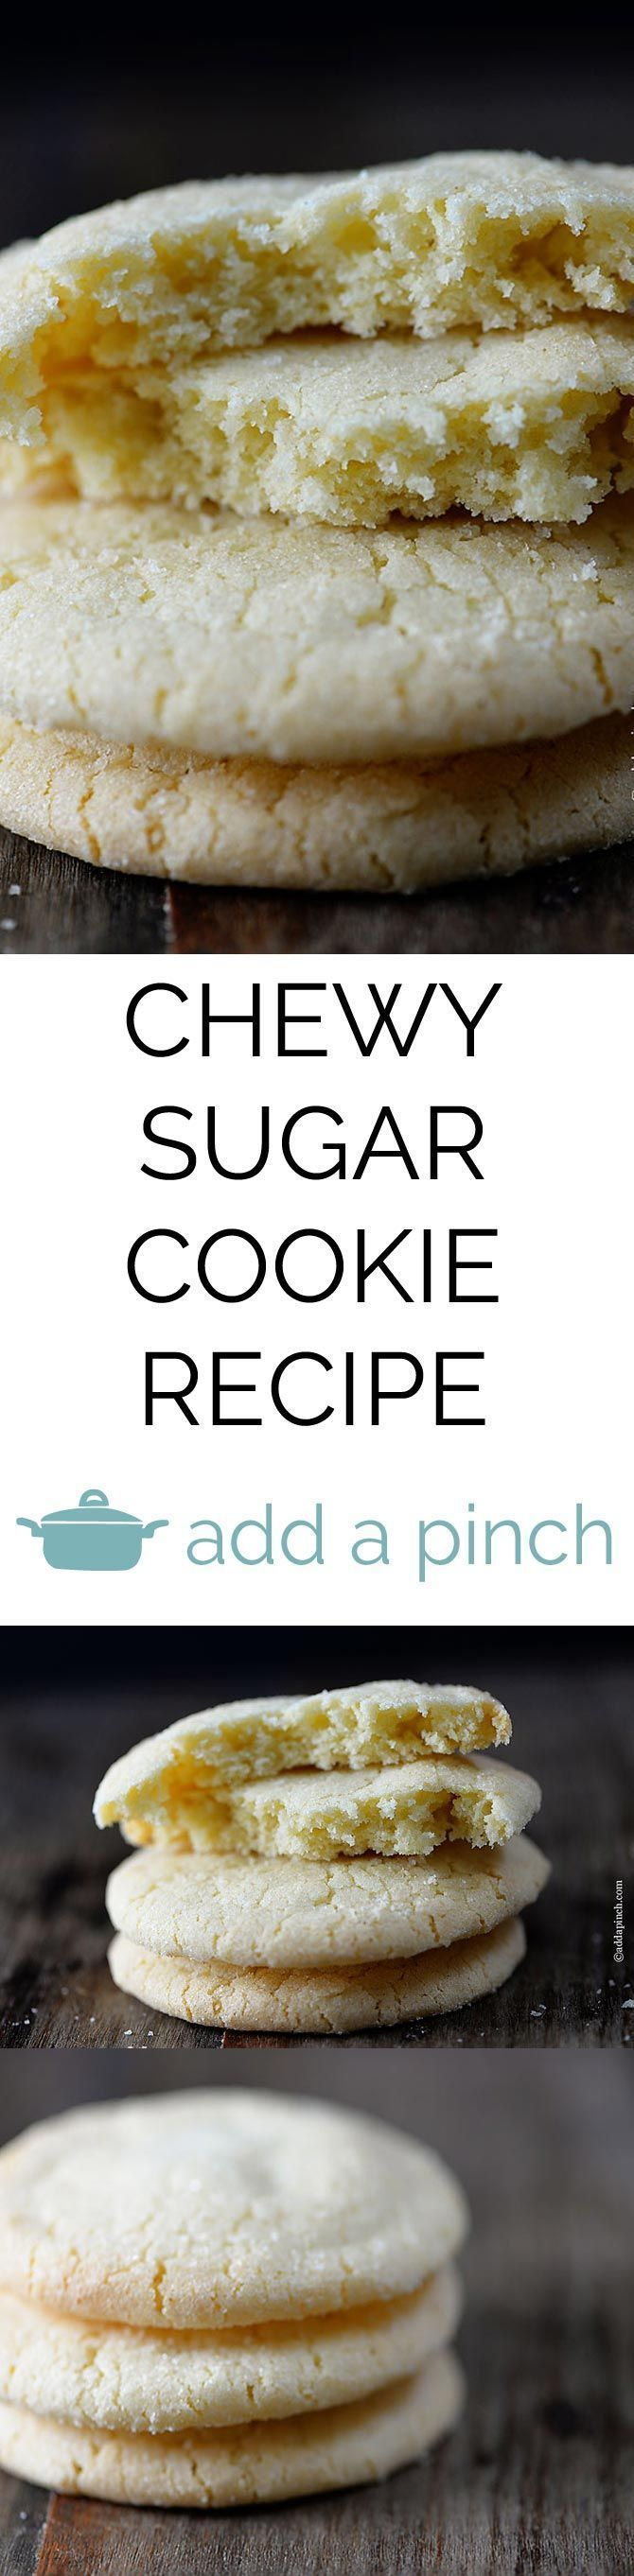 Sugar Cookie Recipe - These are my favorite sugar cookies! They are simple to make for parties or for snacking and they have a great chewy texture!  from addapinch.com